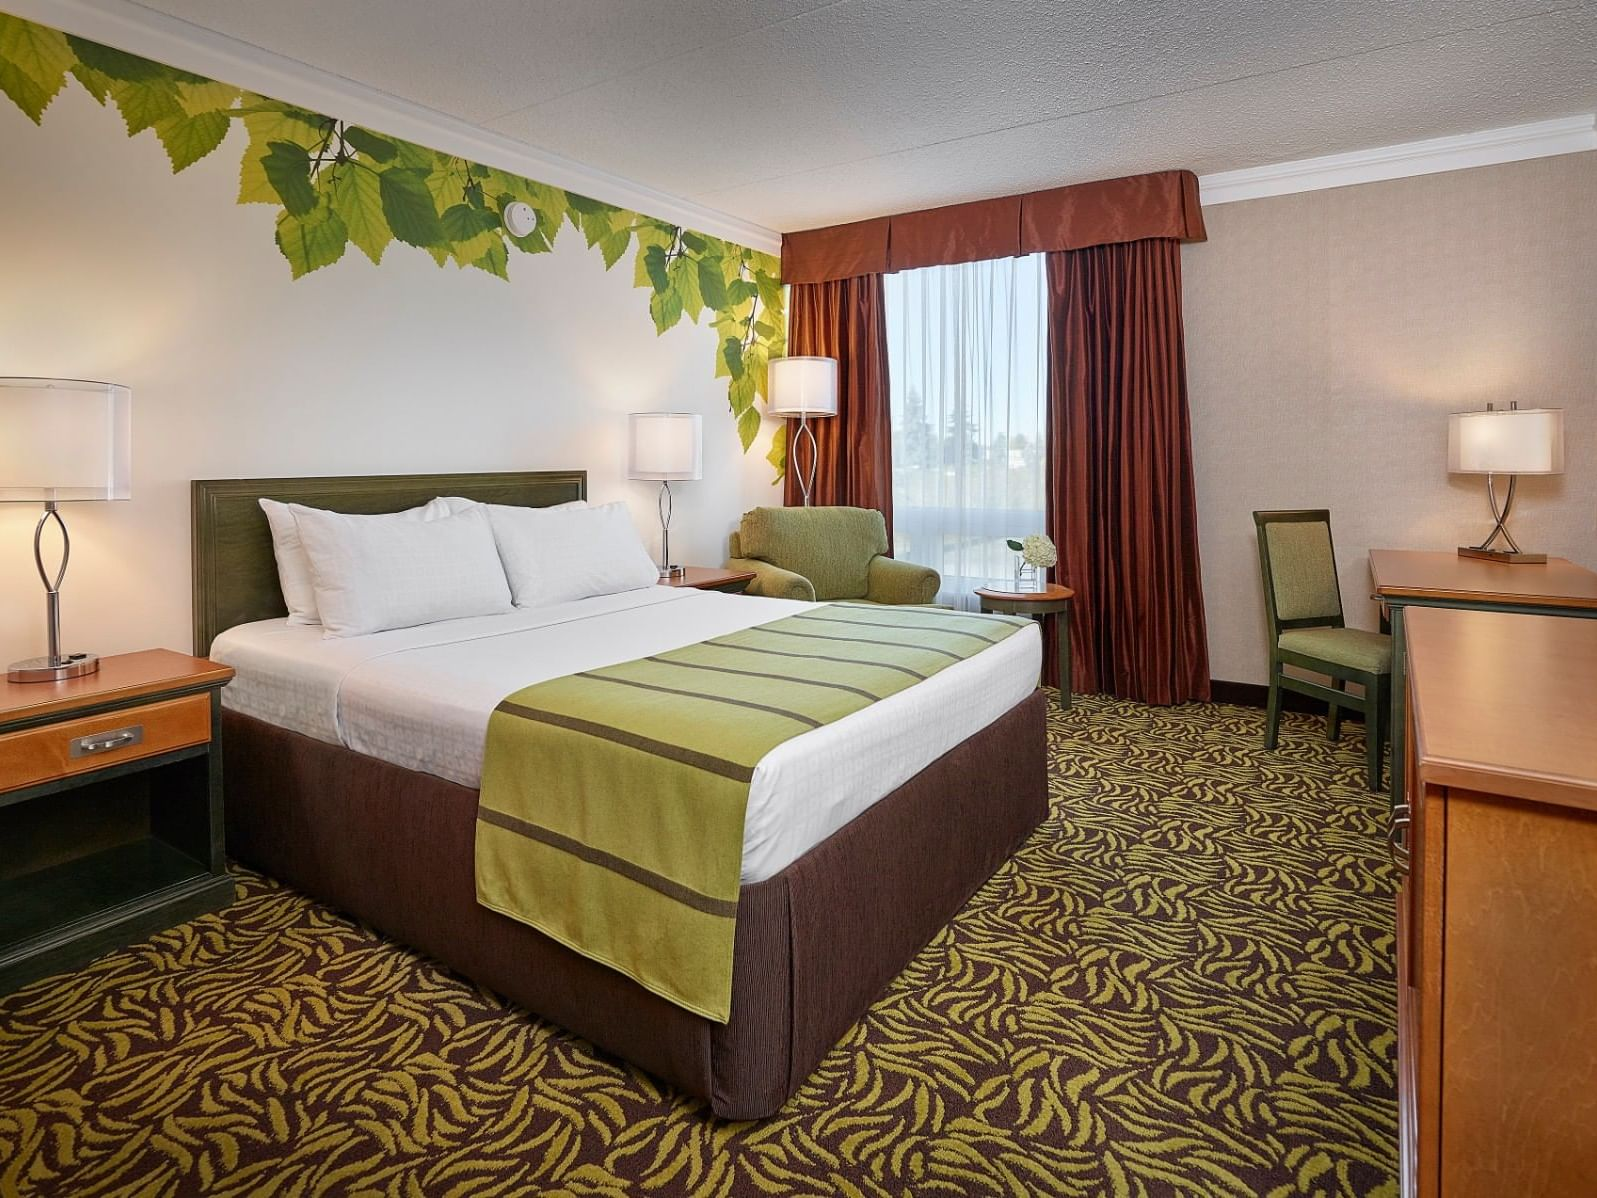 Accessible Room with a king size bed at Varscona Hotel on Whyte